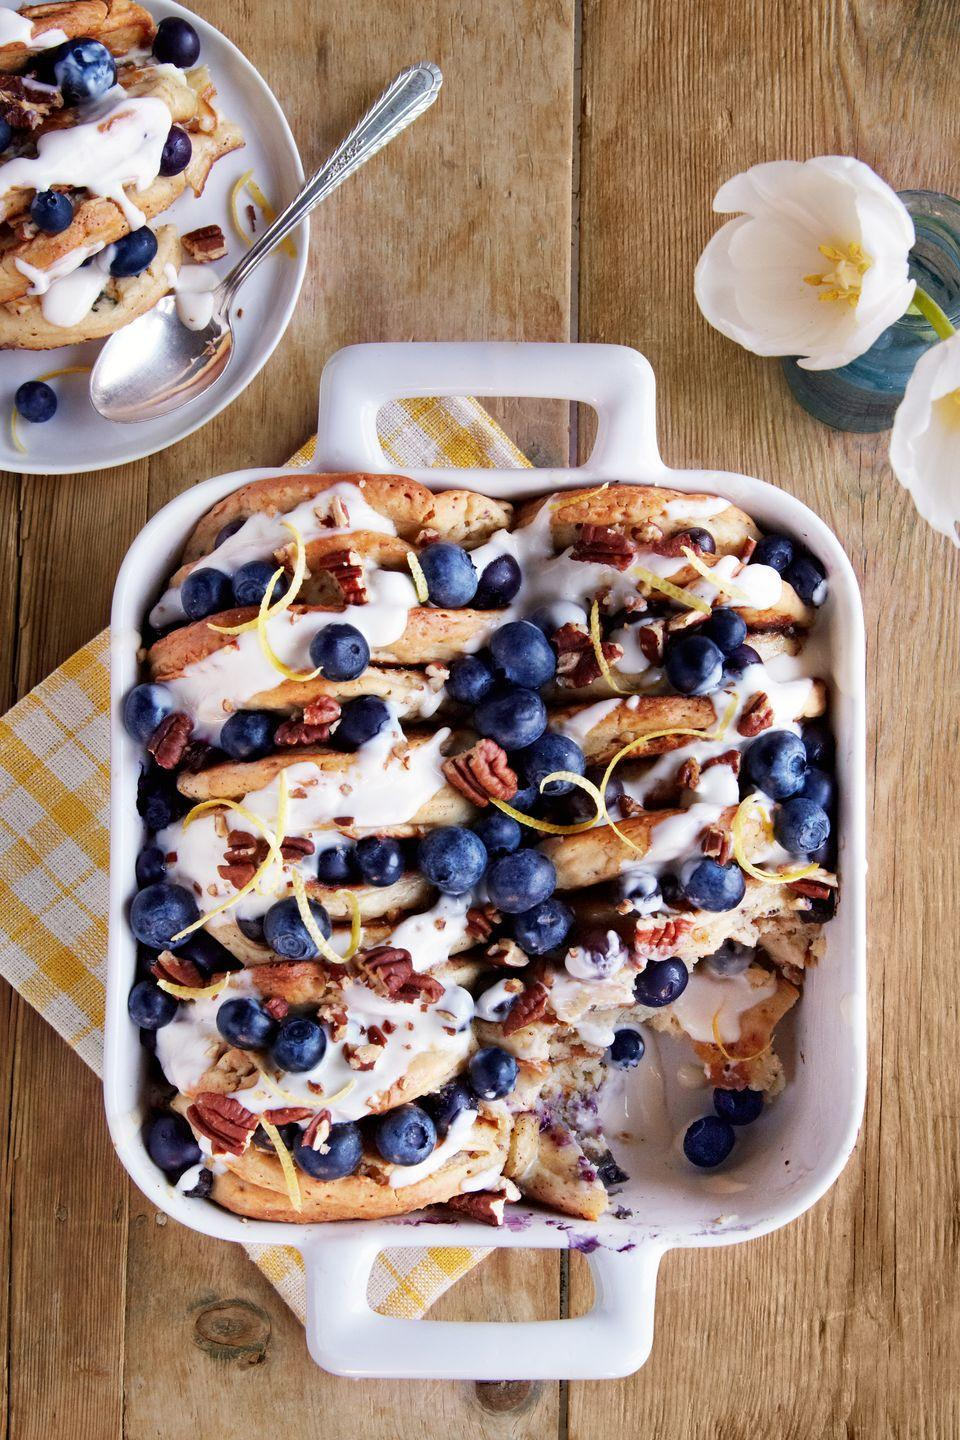 """<p><span>There's no better way to wake up than with bread pudding and pancakes. </span></p><p><span><strong><a href=""""https://www.countryliving.com/food-drinks/recipes/a37601/blueberry-pecan-pancake-bread-pudding/"""" rel=""""nofollow noopener"""" target=""""_blank"""" data-ylk=""""slk:Get the recipe"""" class=""""link rapid-noclick-resp"""">Get the recipe</a>.</strong></span><br></p>"""